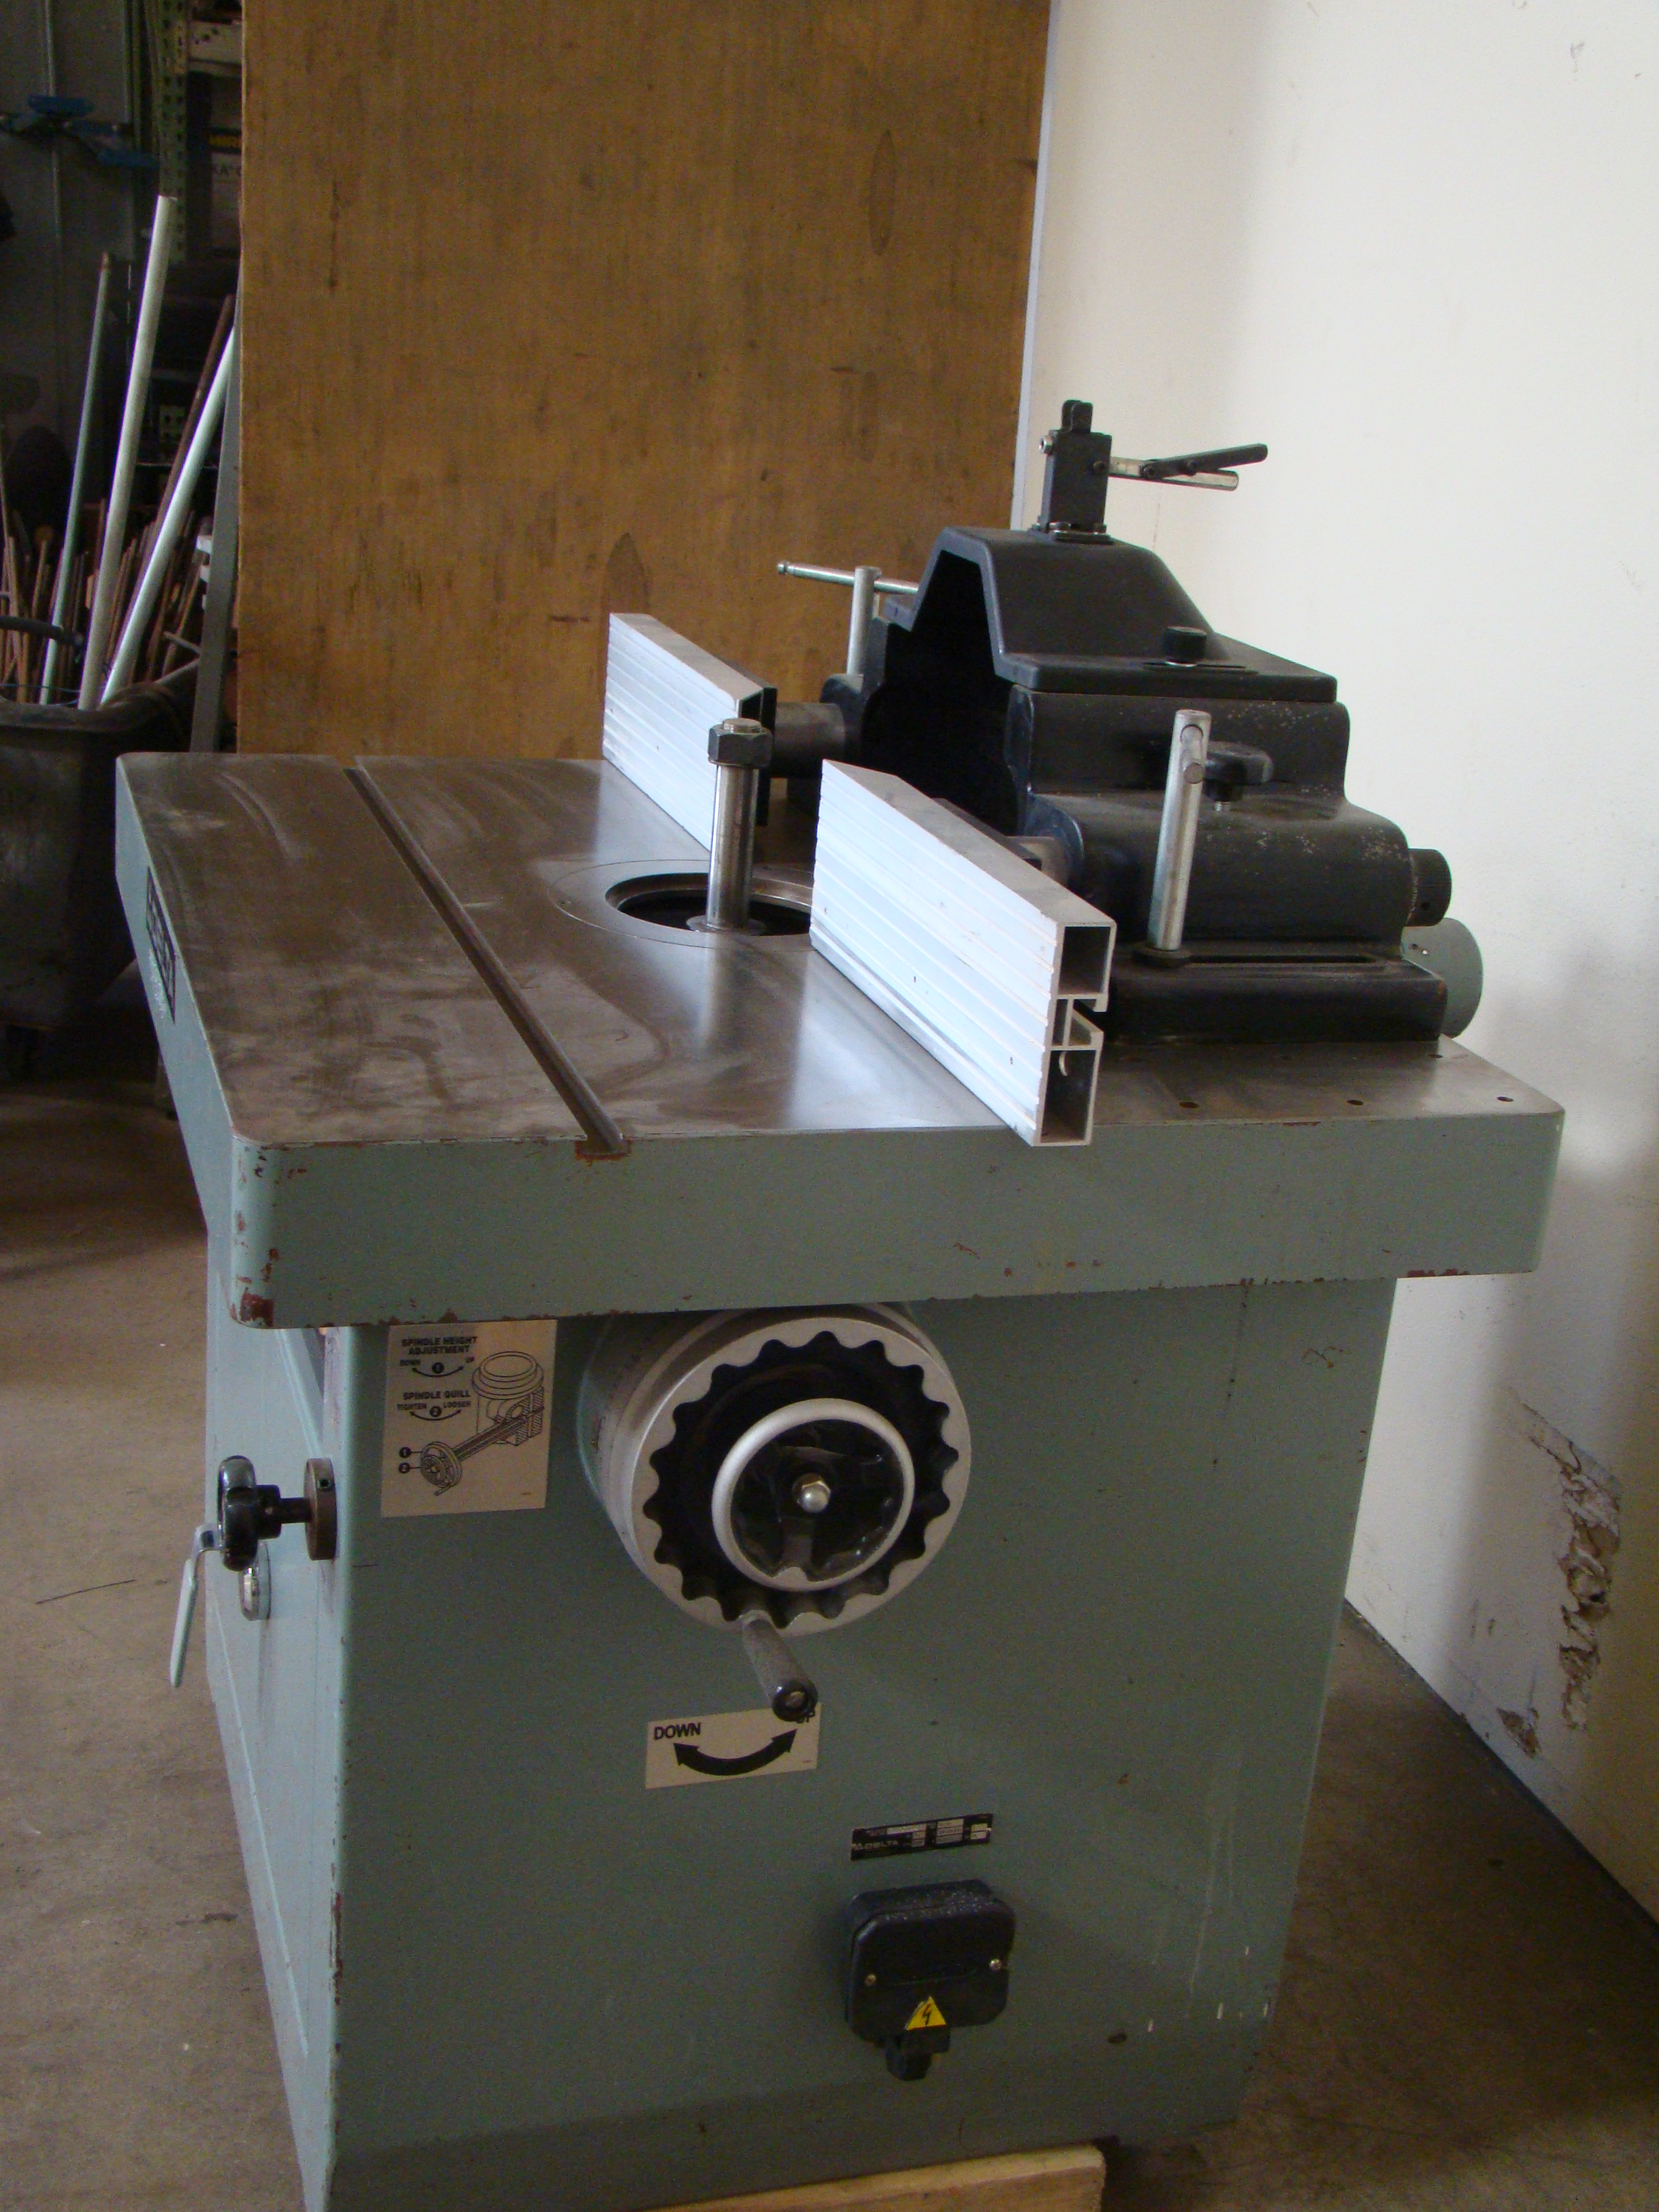 """Delta Wood Shaper 43-791 5 speed 1-1/4"""" Spindle 7.5 HP 200-220/440 Volt 3PH - Image 3 of 6"""